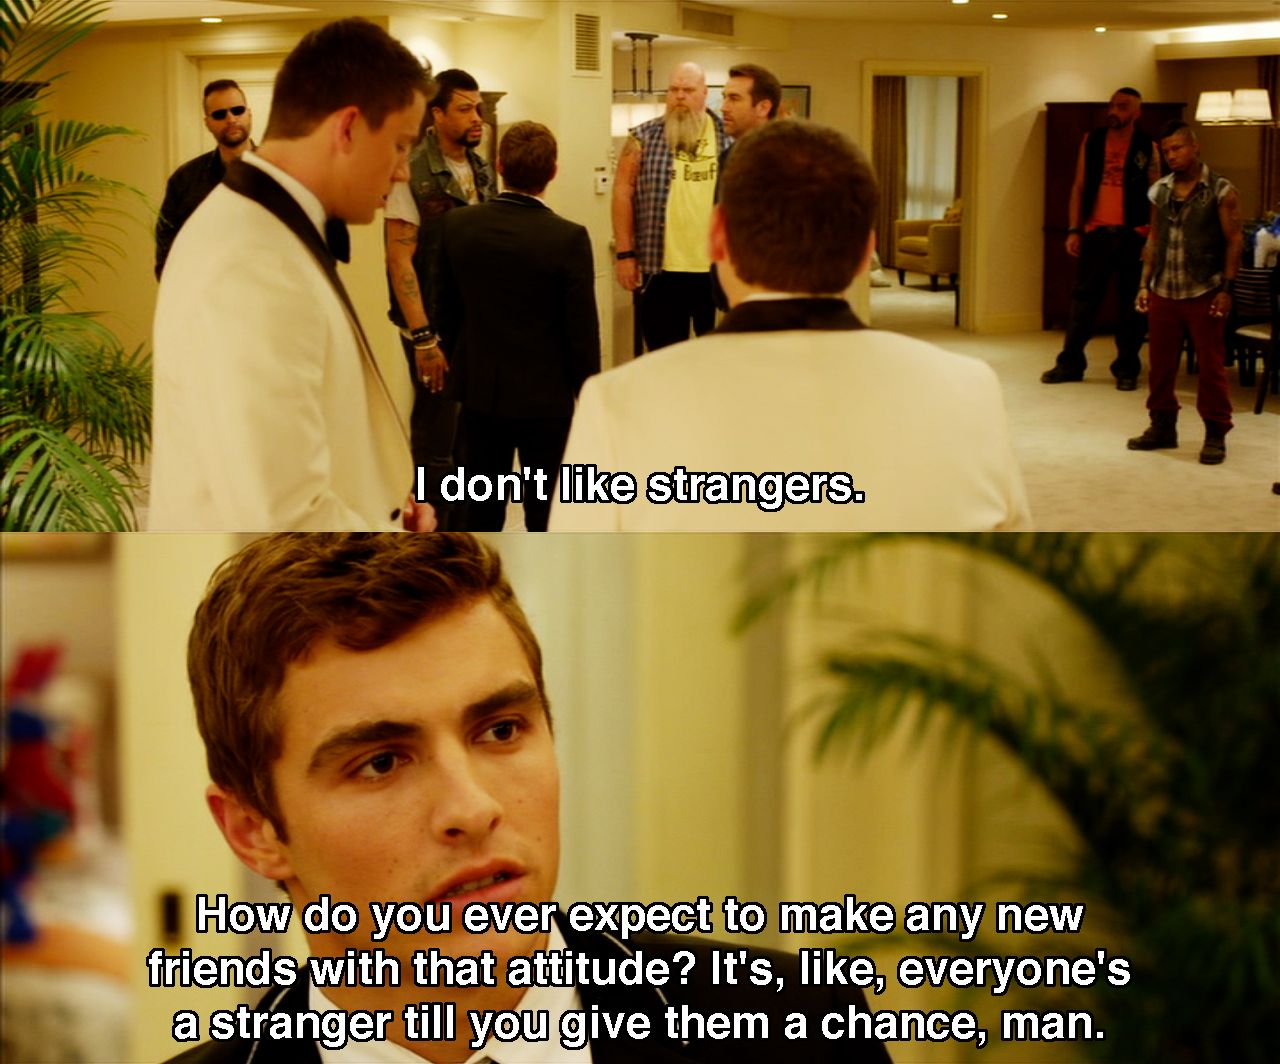 Dave Franco 21 Jump Street Quotes 21 jump street tumblr quotesDave Franco 21 Jump Street